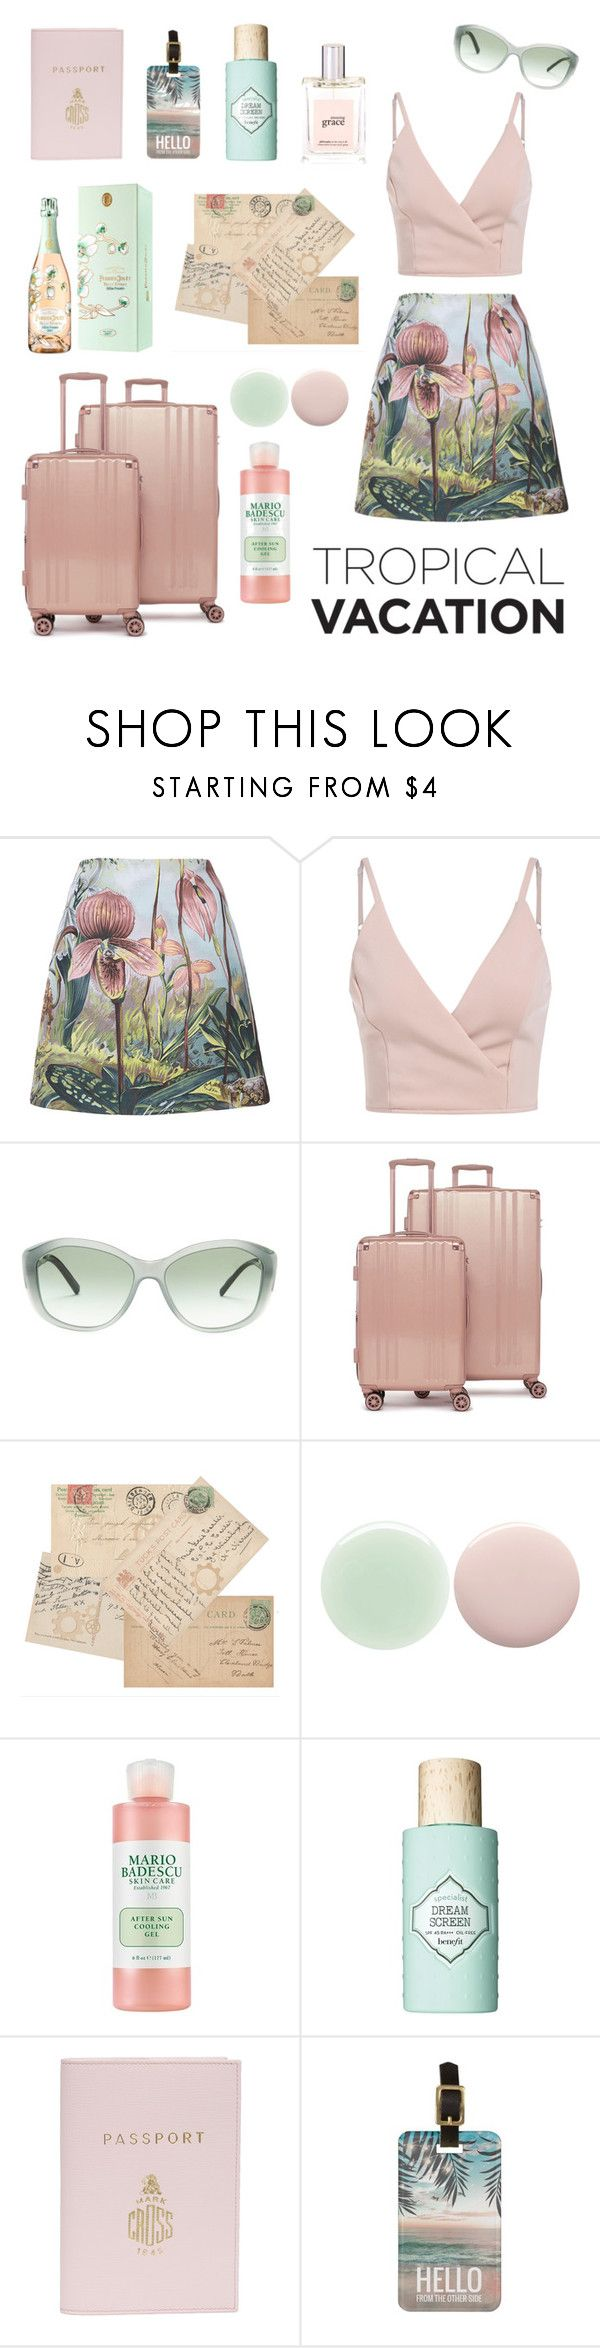 """""""Untitled #96"""" by shelleycox25 ❤ liked on Polyvore featuring ADAM, Burberry, CalPak, Nails Inc., Benefit, Mark Cross and philosophy"""